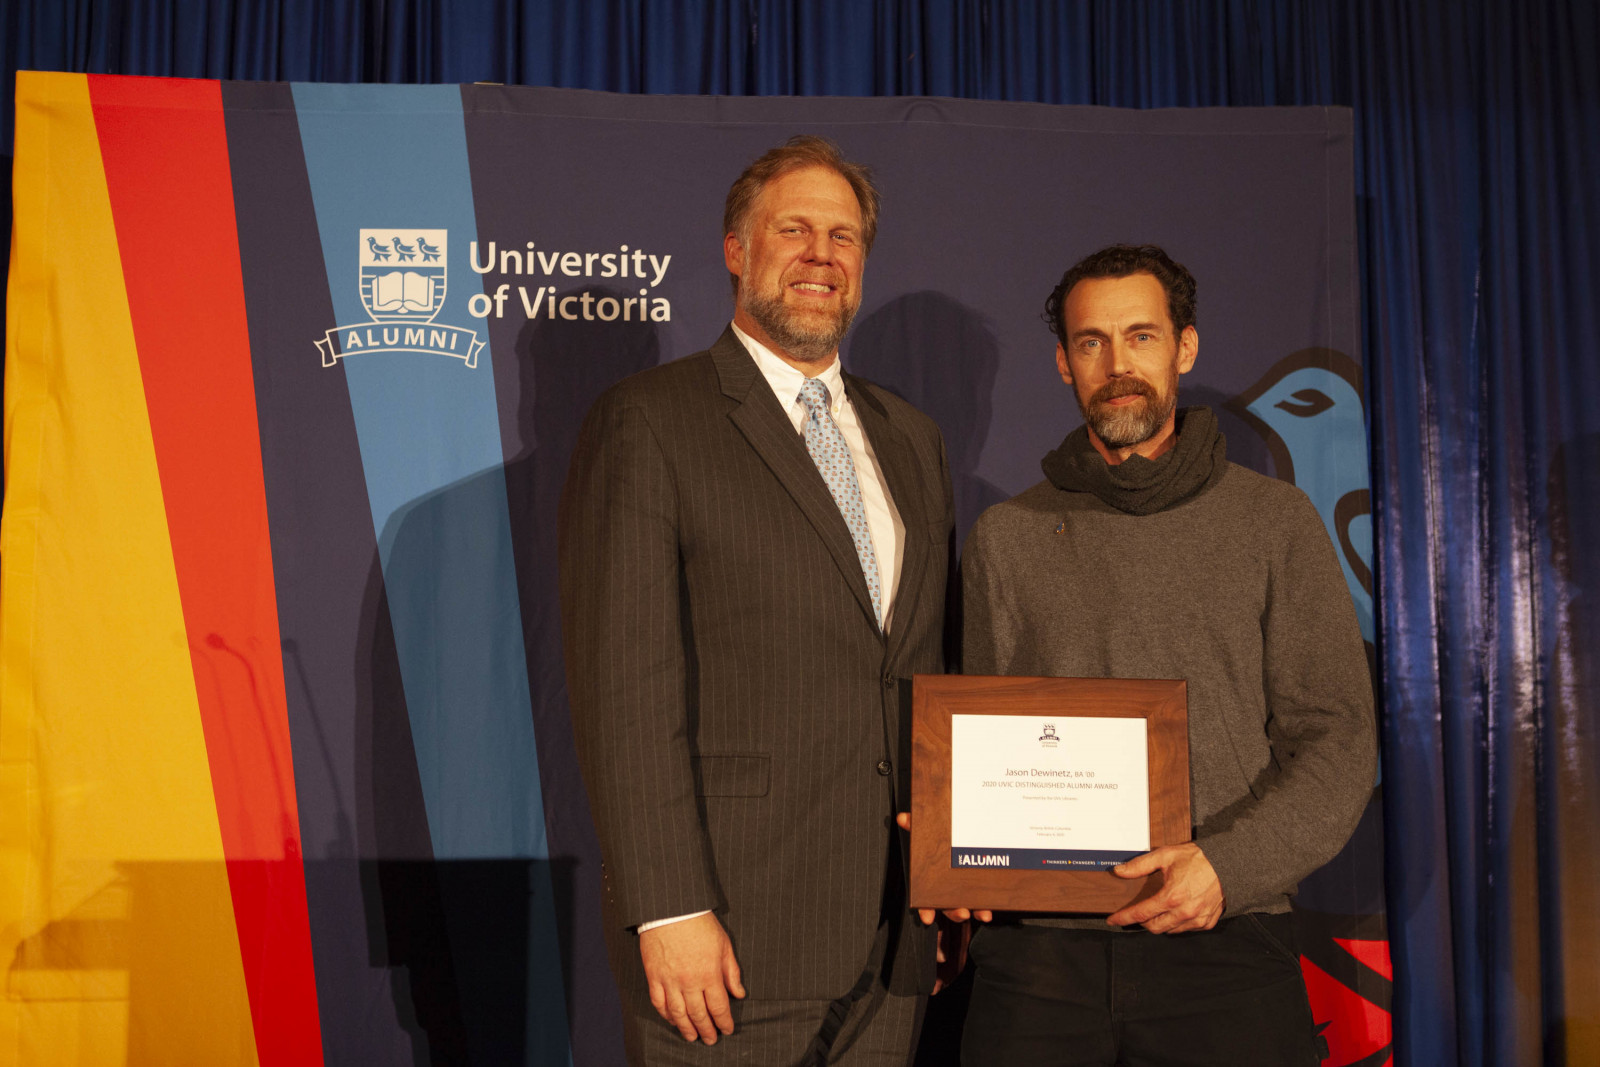 Distinuished Alumni Award recipient Jason Dewinetz with University Librarian Jonathan Bengtson